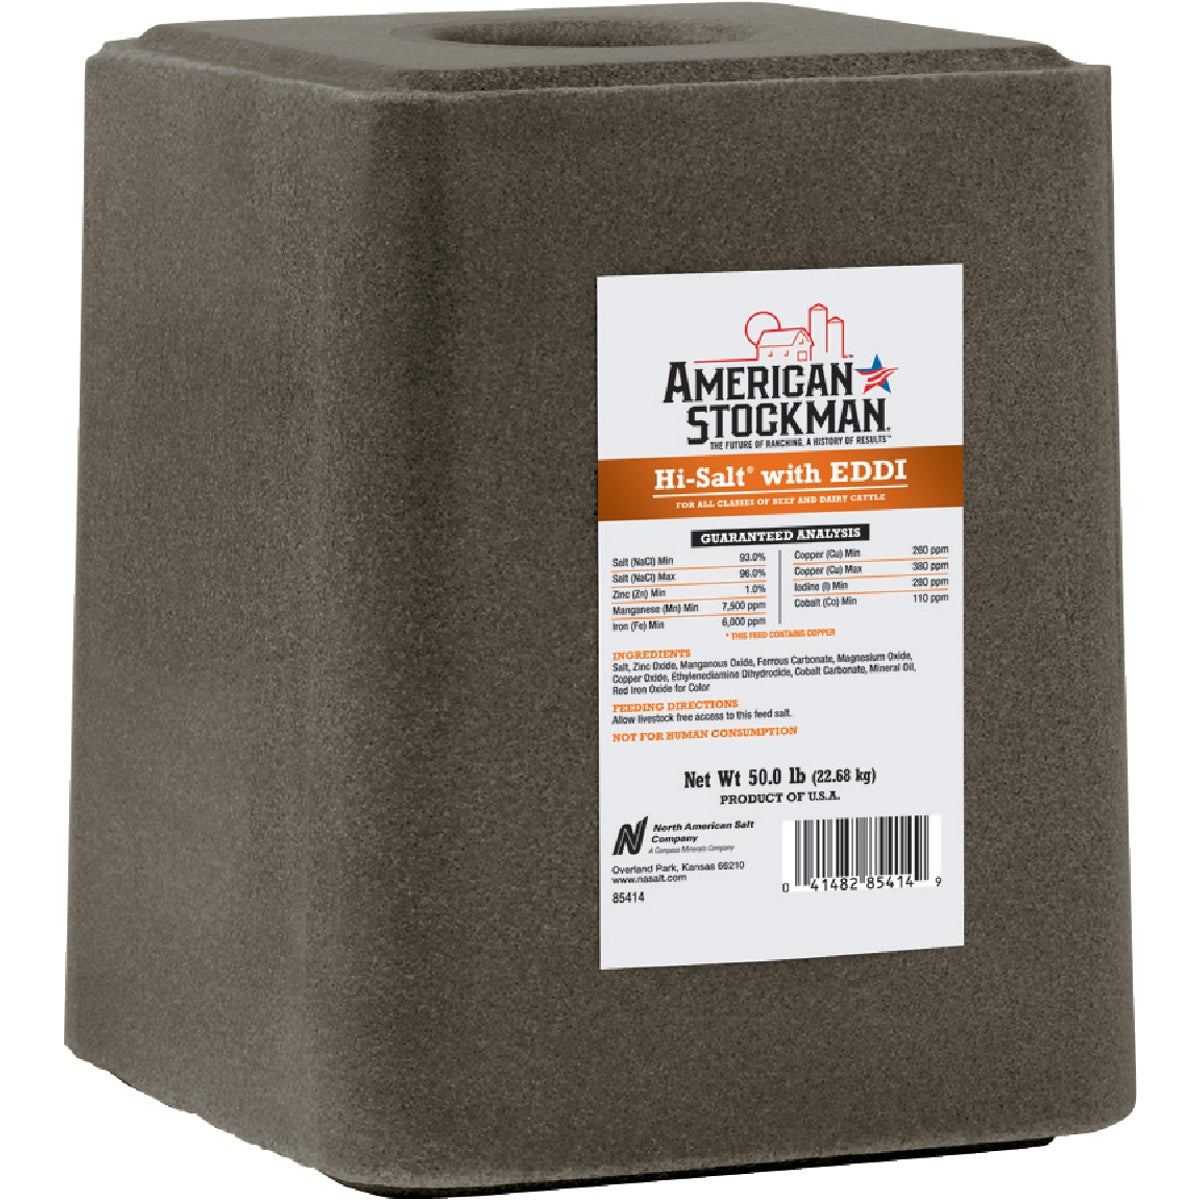 50LB TM W/EDDI BLOCK - 85414 by North American Salt